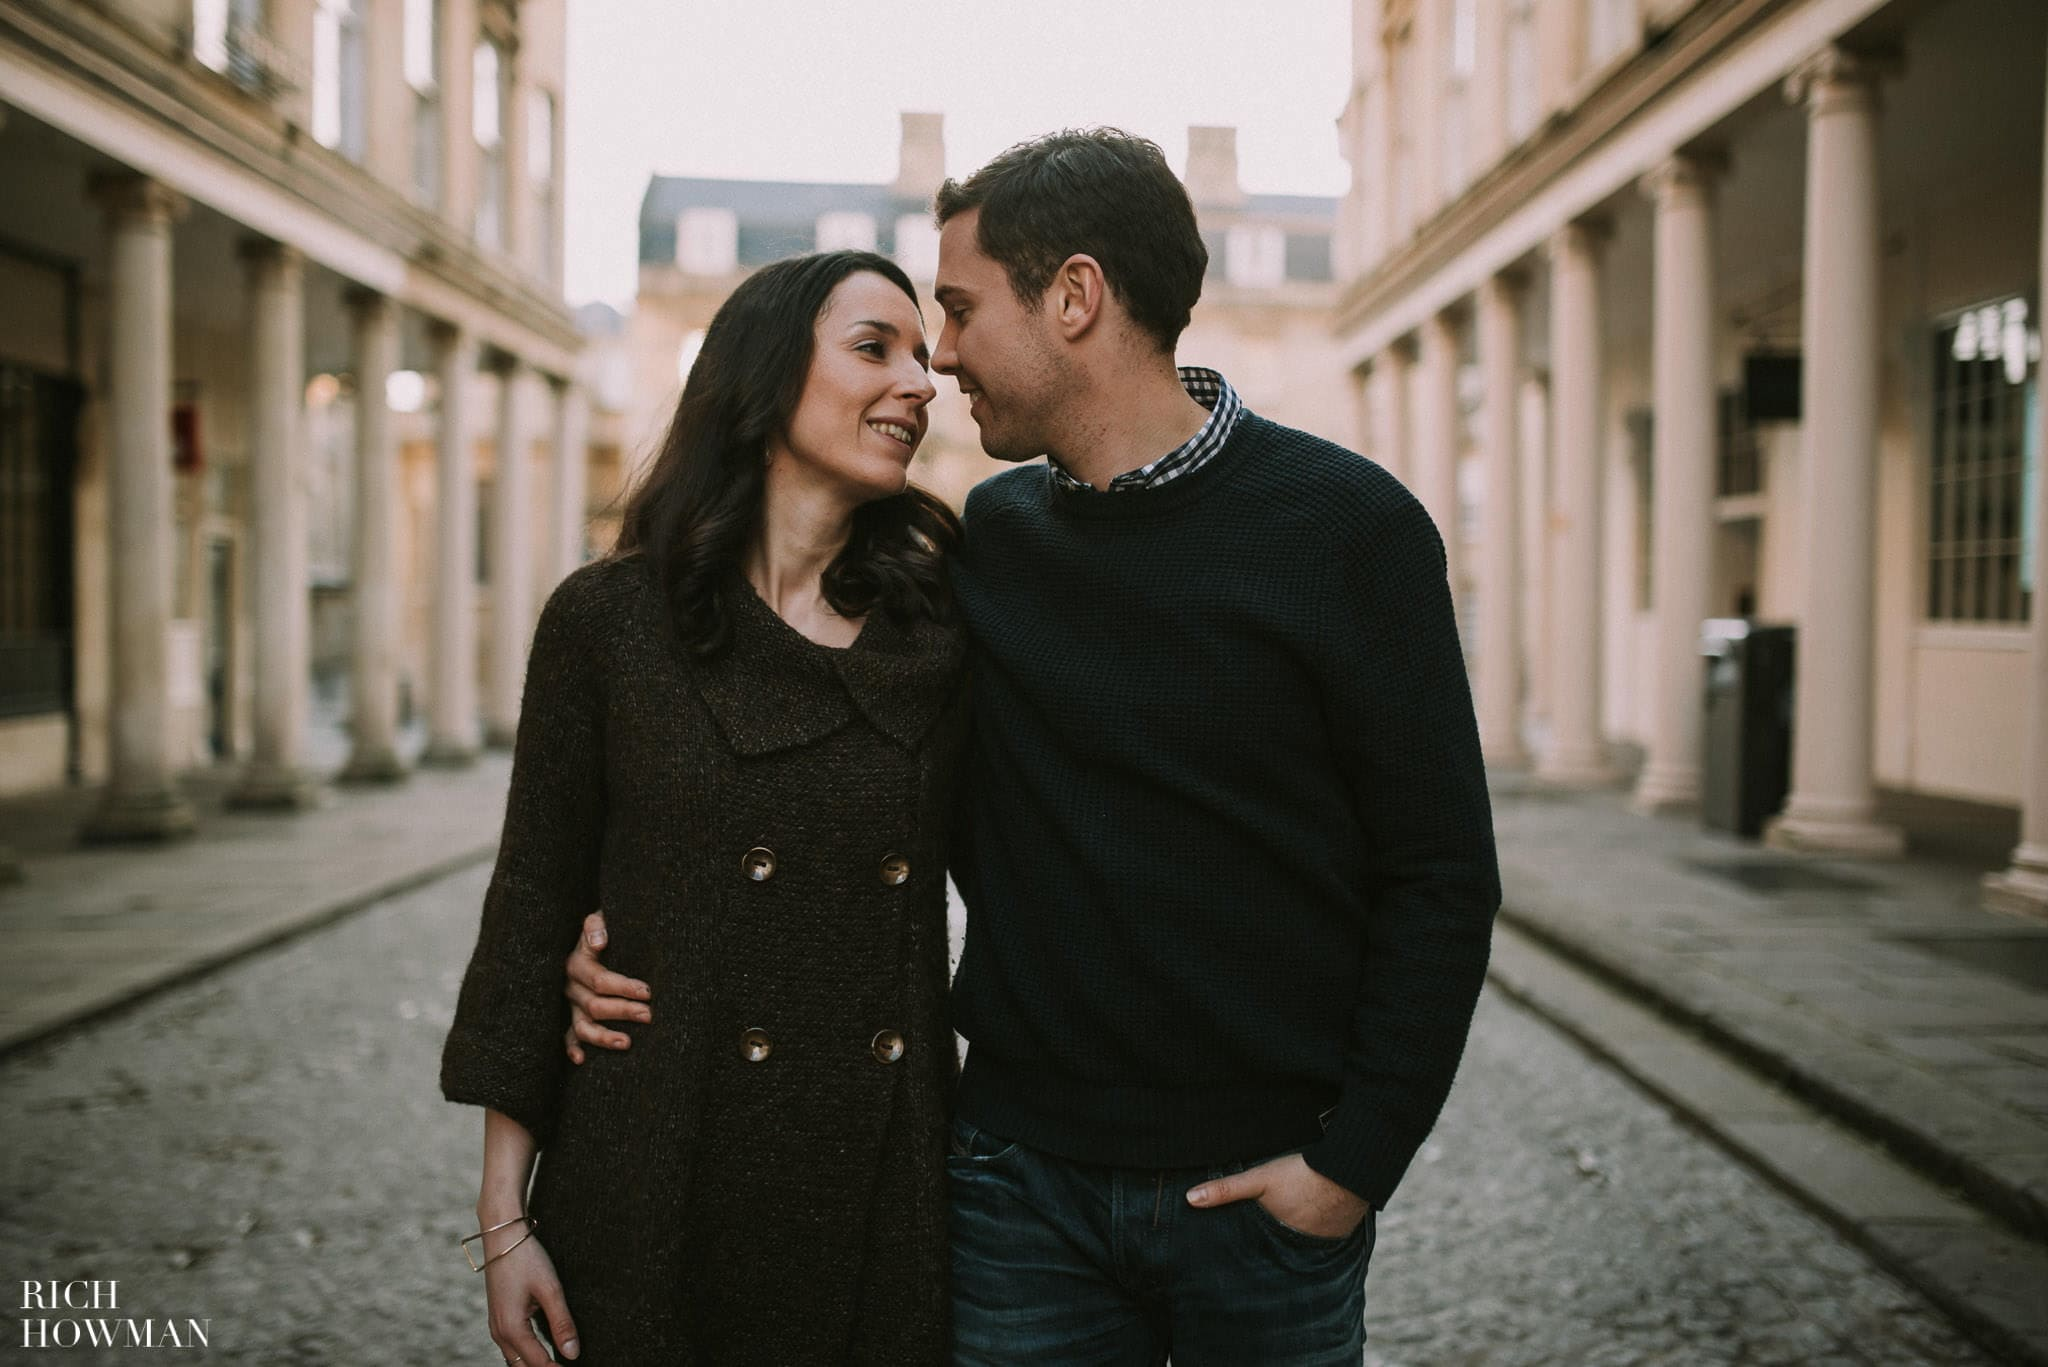 Engagement Photography outside of the Roman Baths in the City of Bath